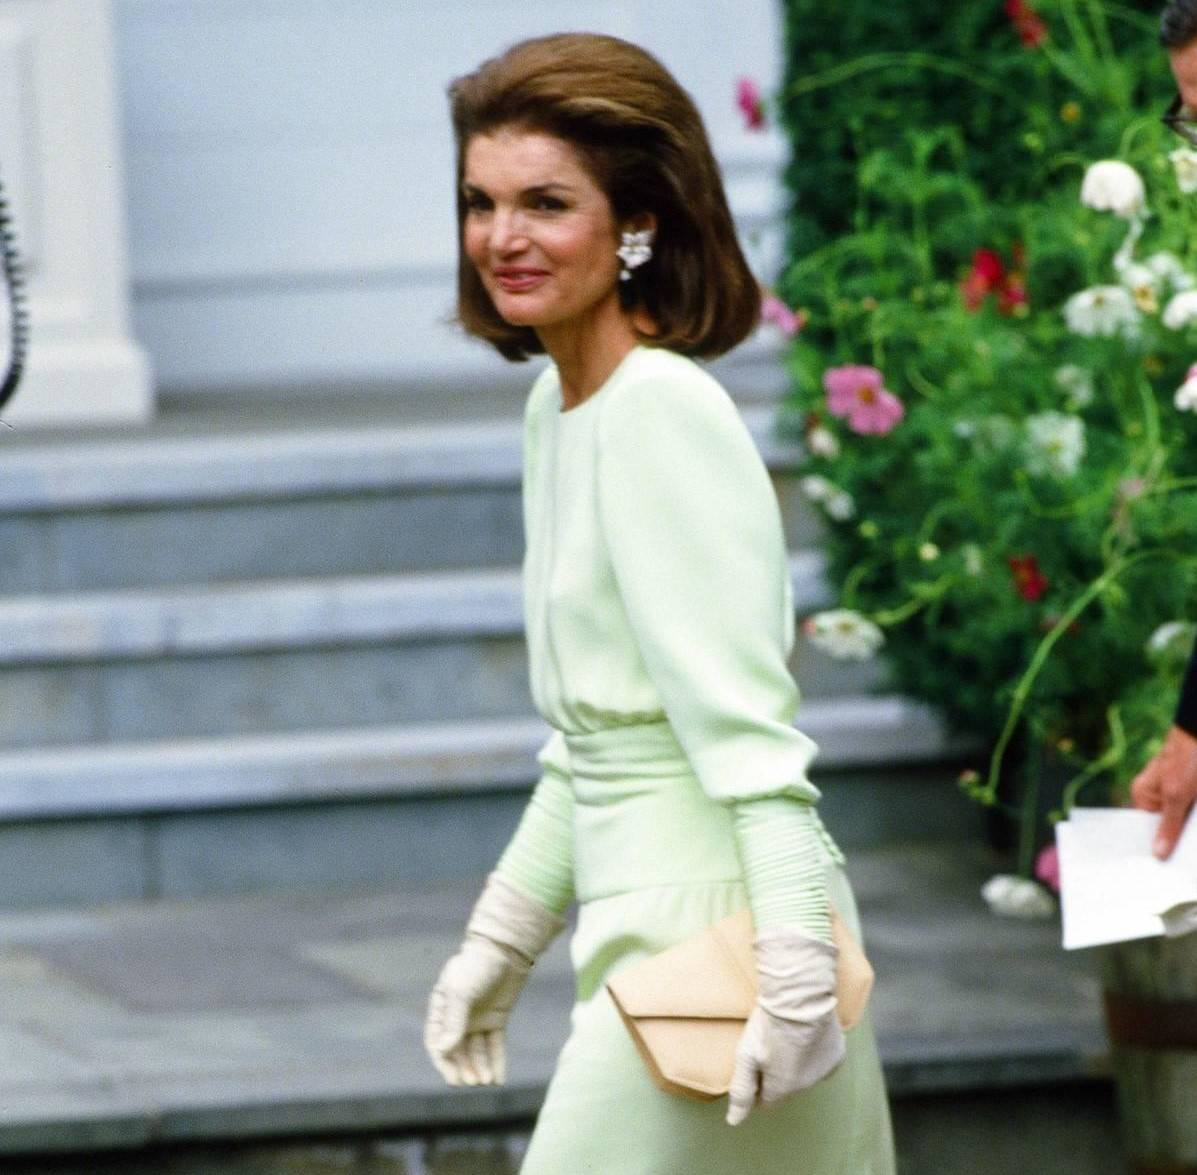 caroline-kennedy-wedding.-75721